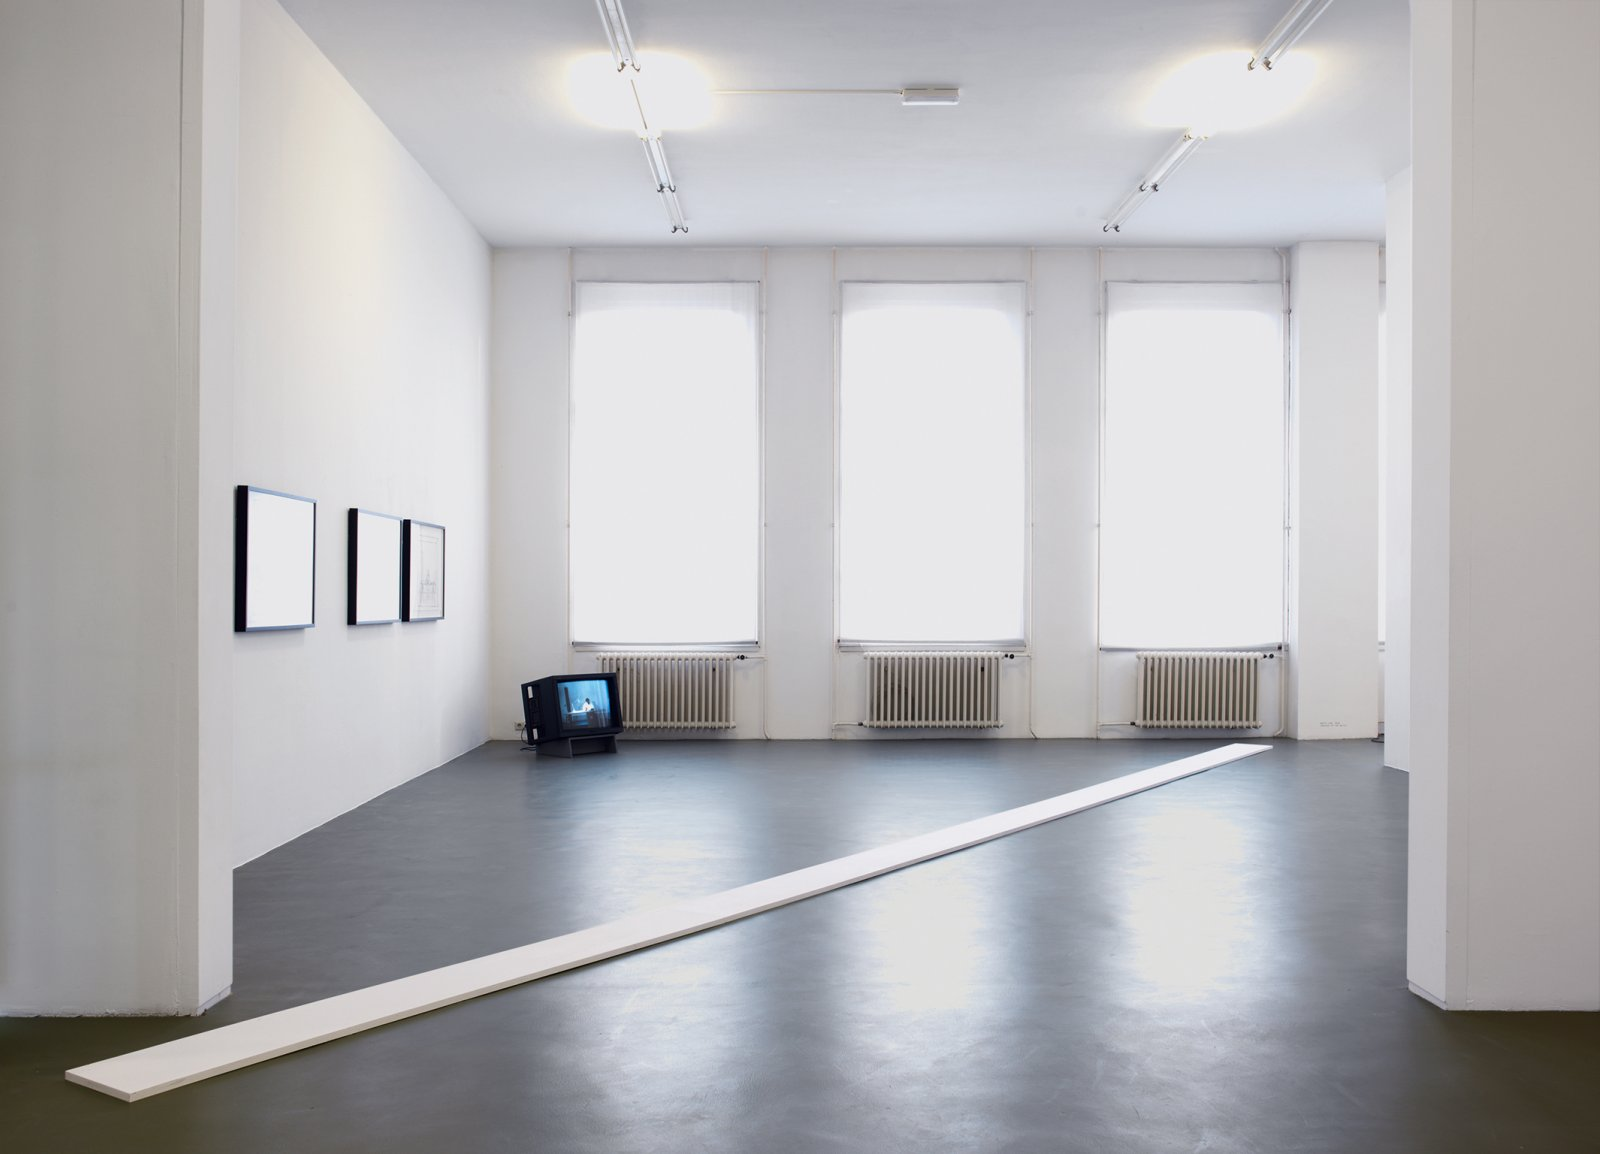 ​​​​​Ian Wallace, ​White Line, 1969–2008, wood and paint, 394 x 12 in. (1000 x 31 cm). Installation view, ​A Literature of Images​, Witte de With, Rotterdam, 2008​​​​​​ by Ian Wallace